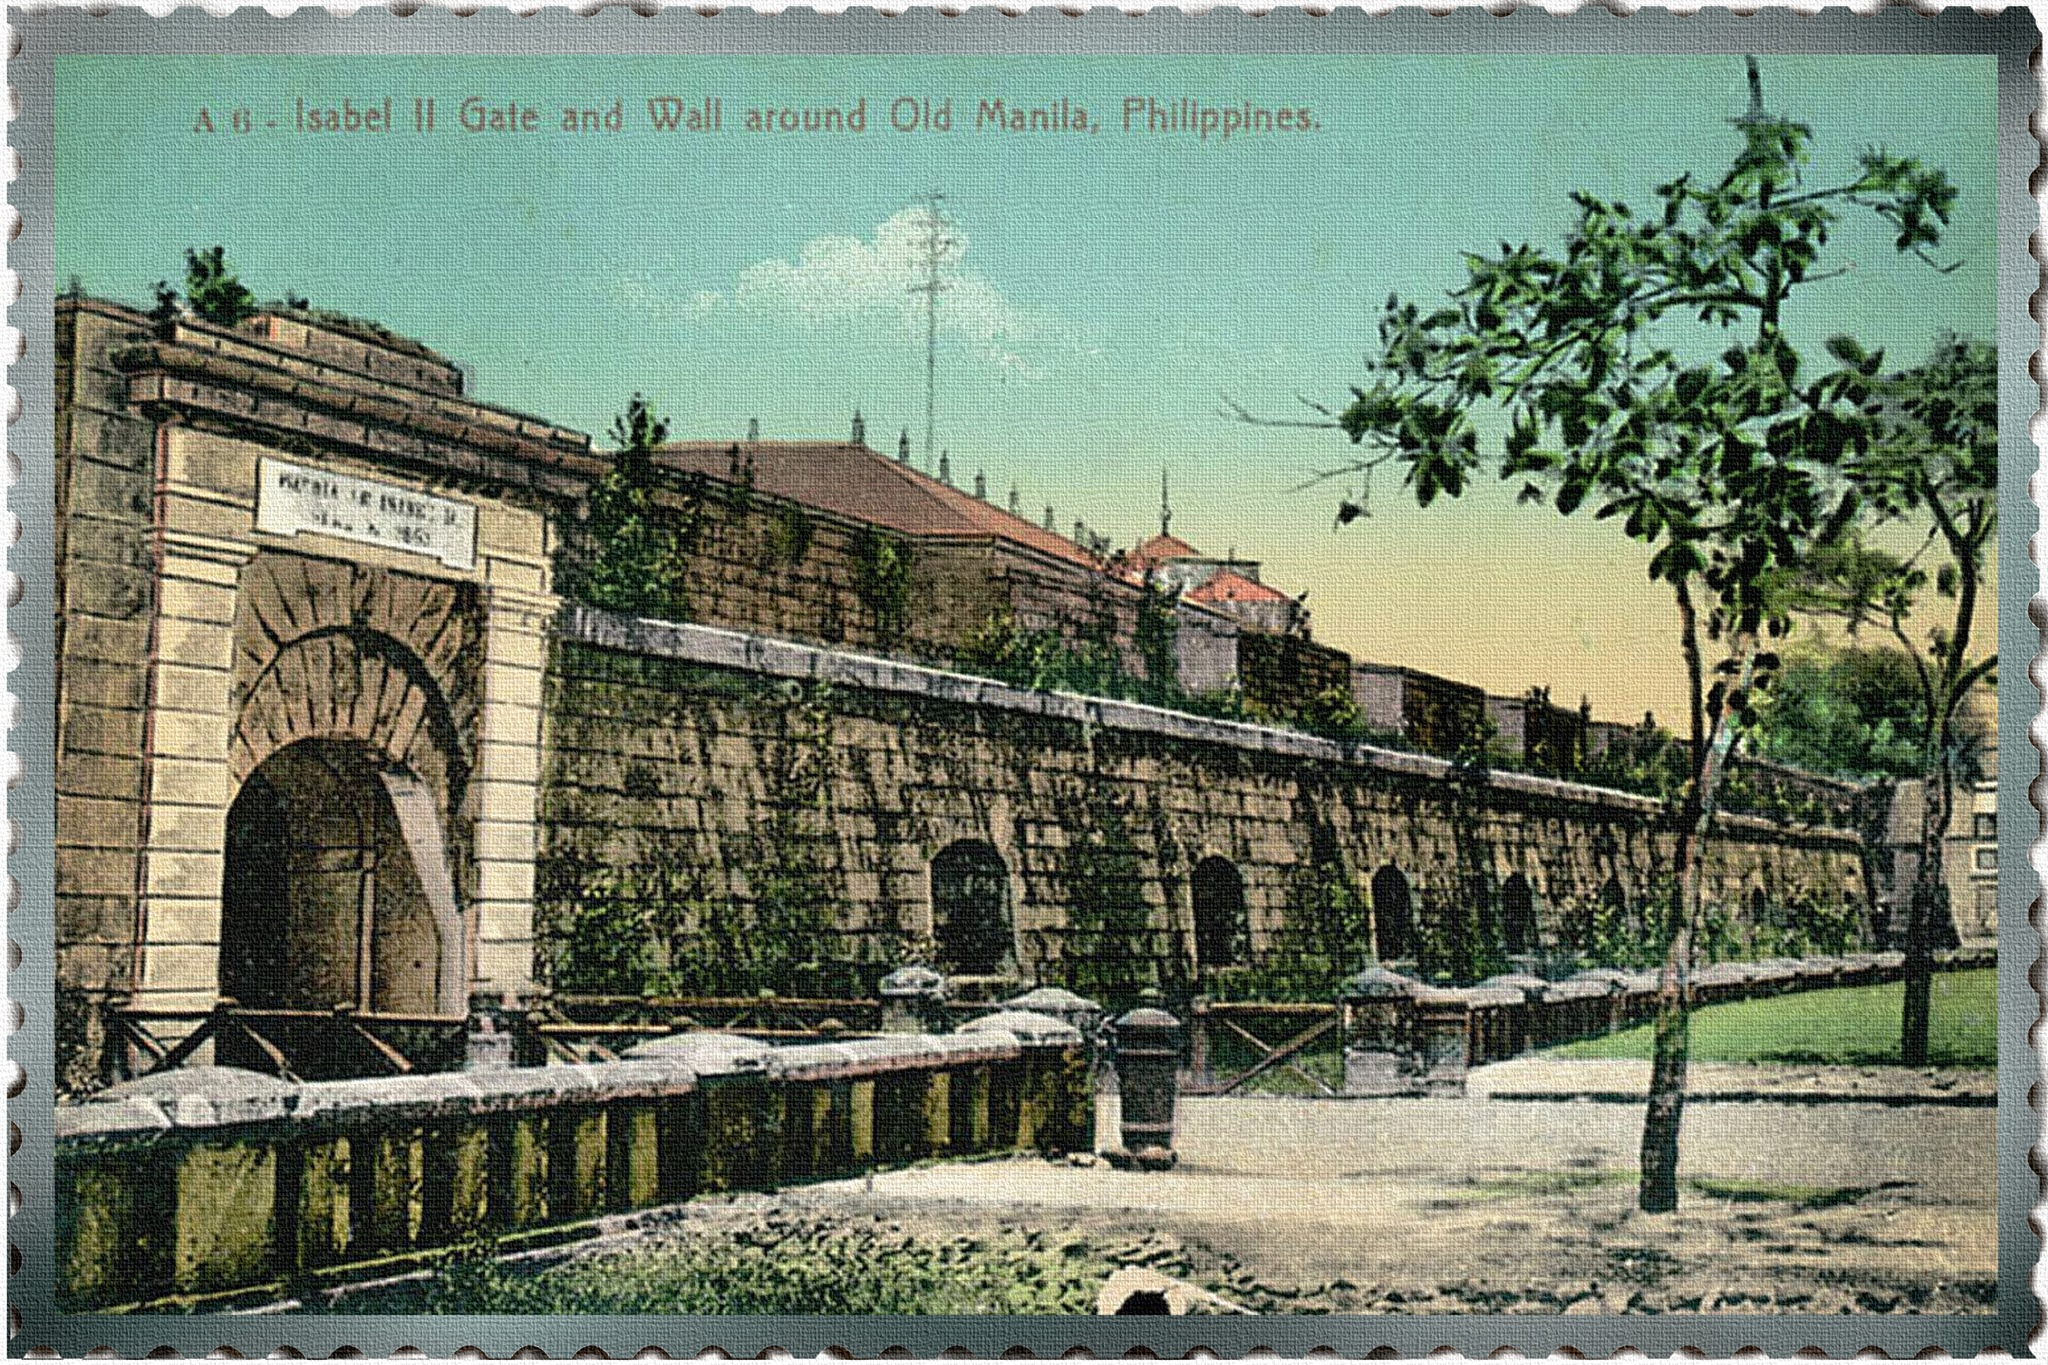 Isabel II Gate and Wall around Old Manila, Philippines